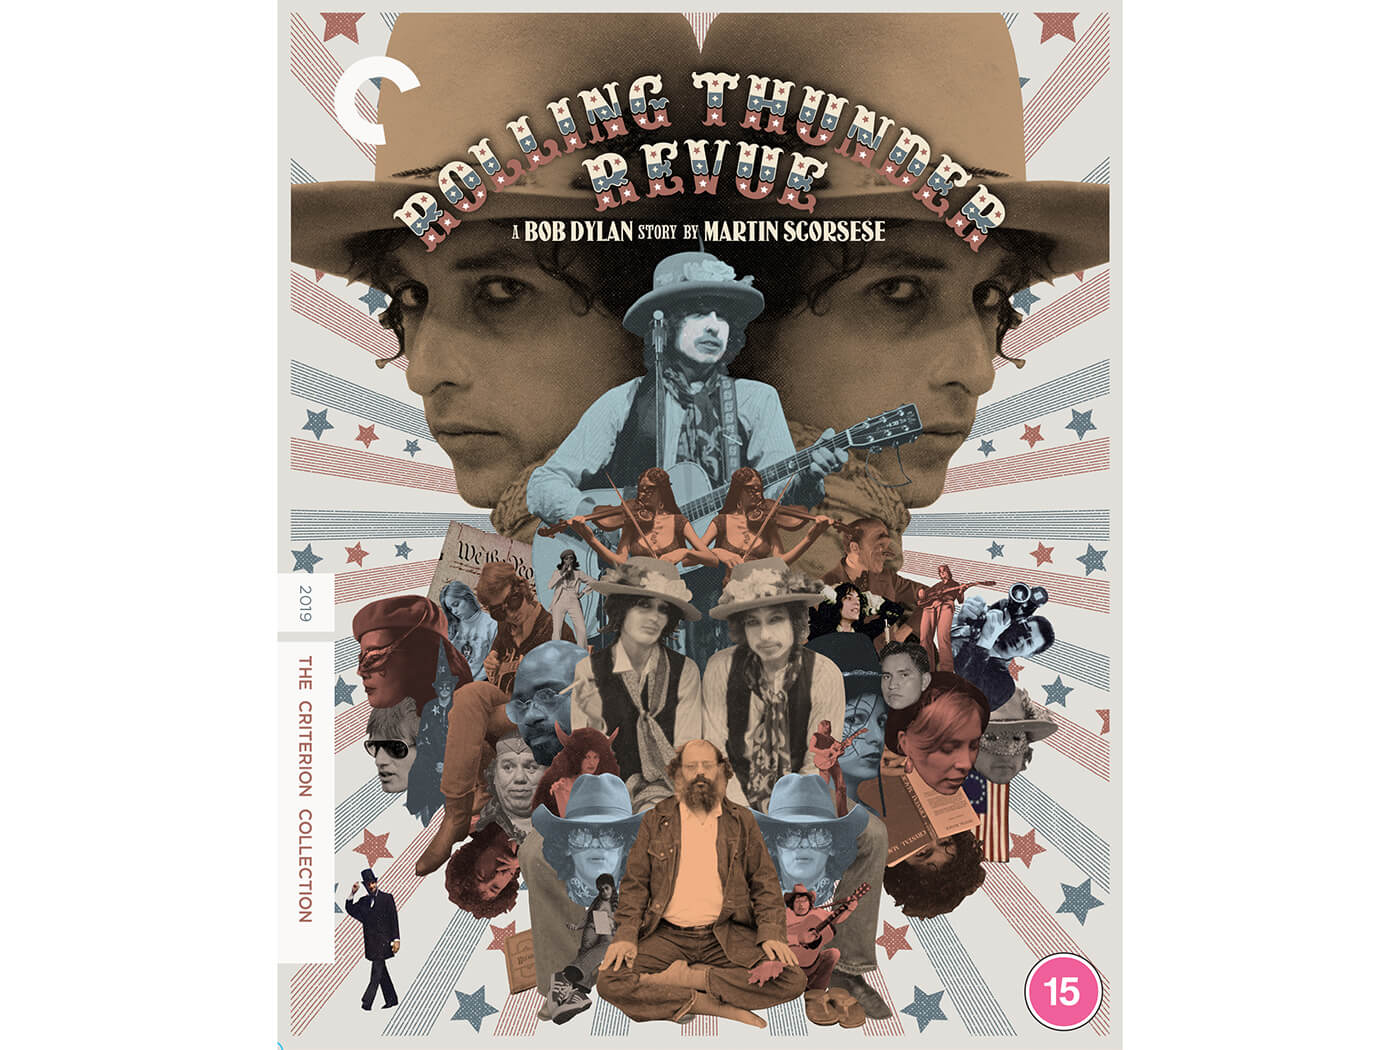 Win a copy of Rolling Thunder Revue: A Bob Dylan Story